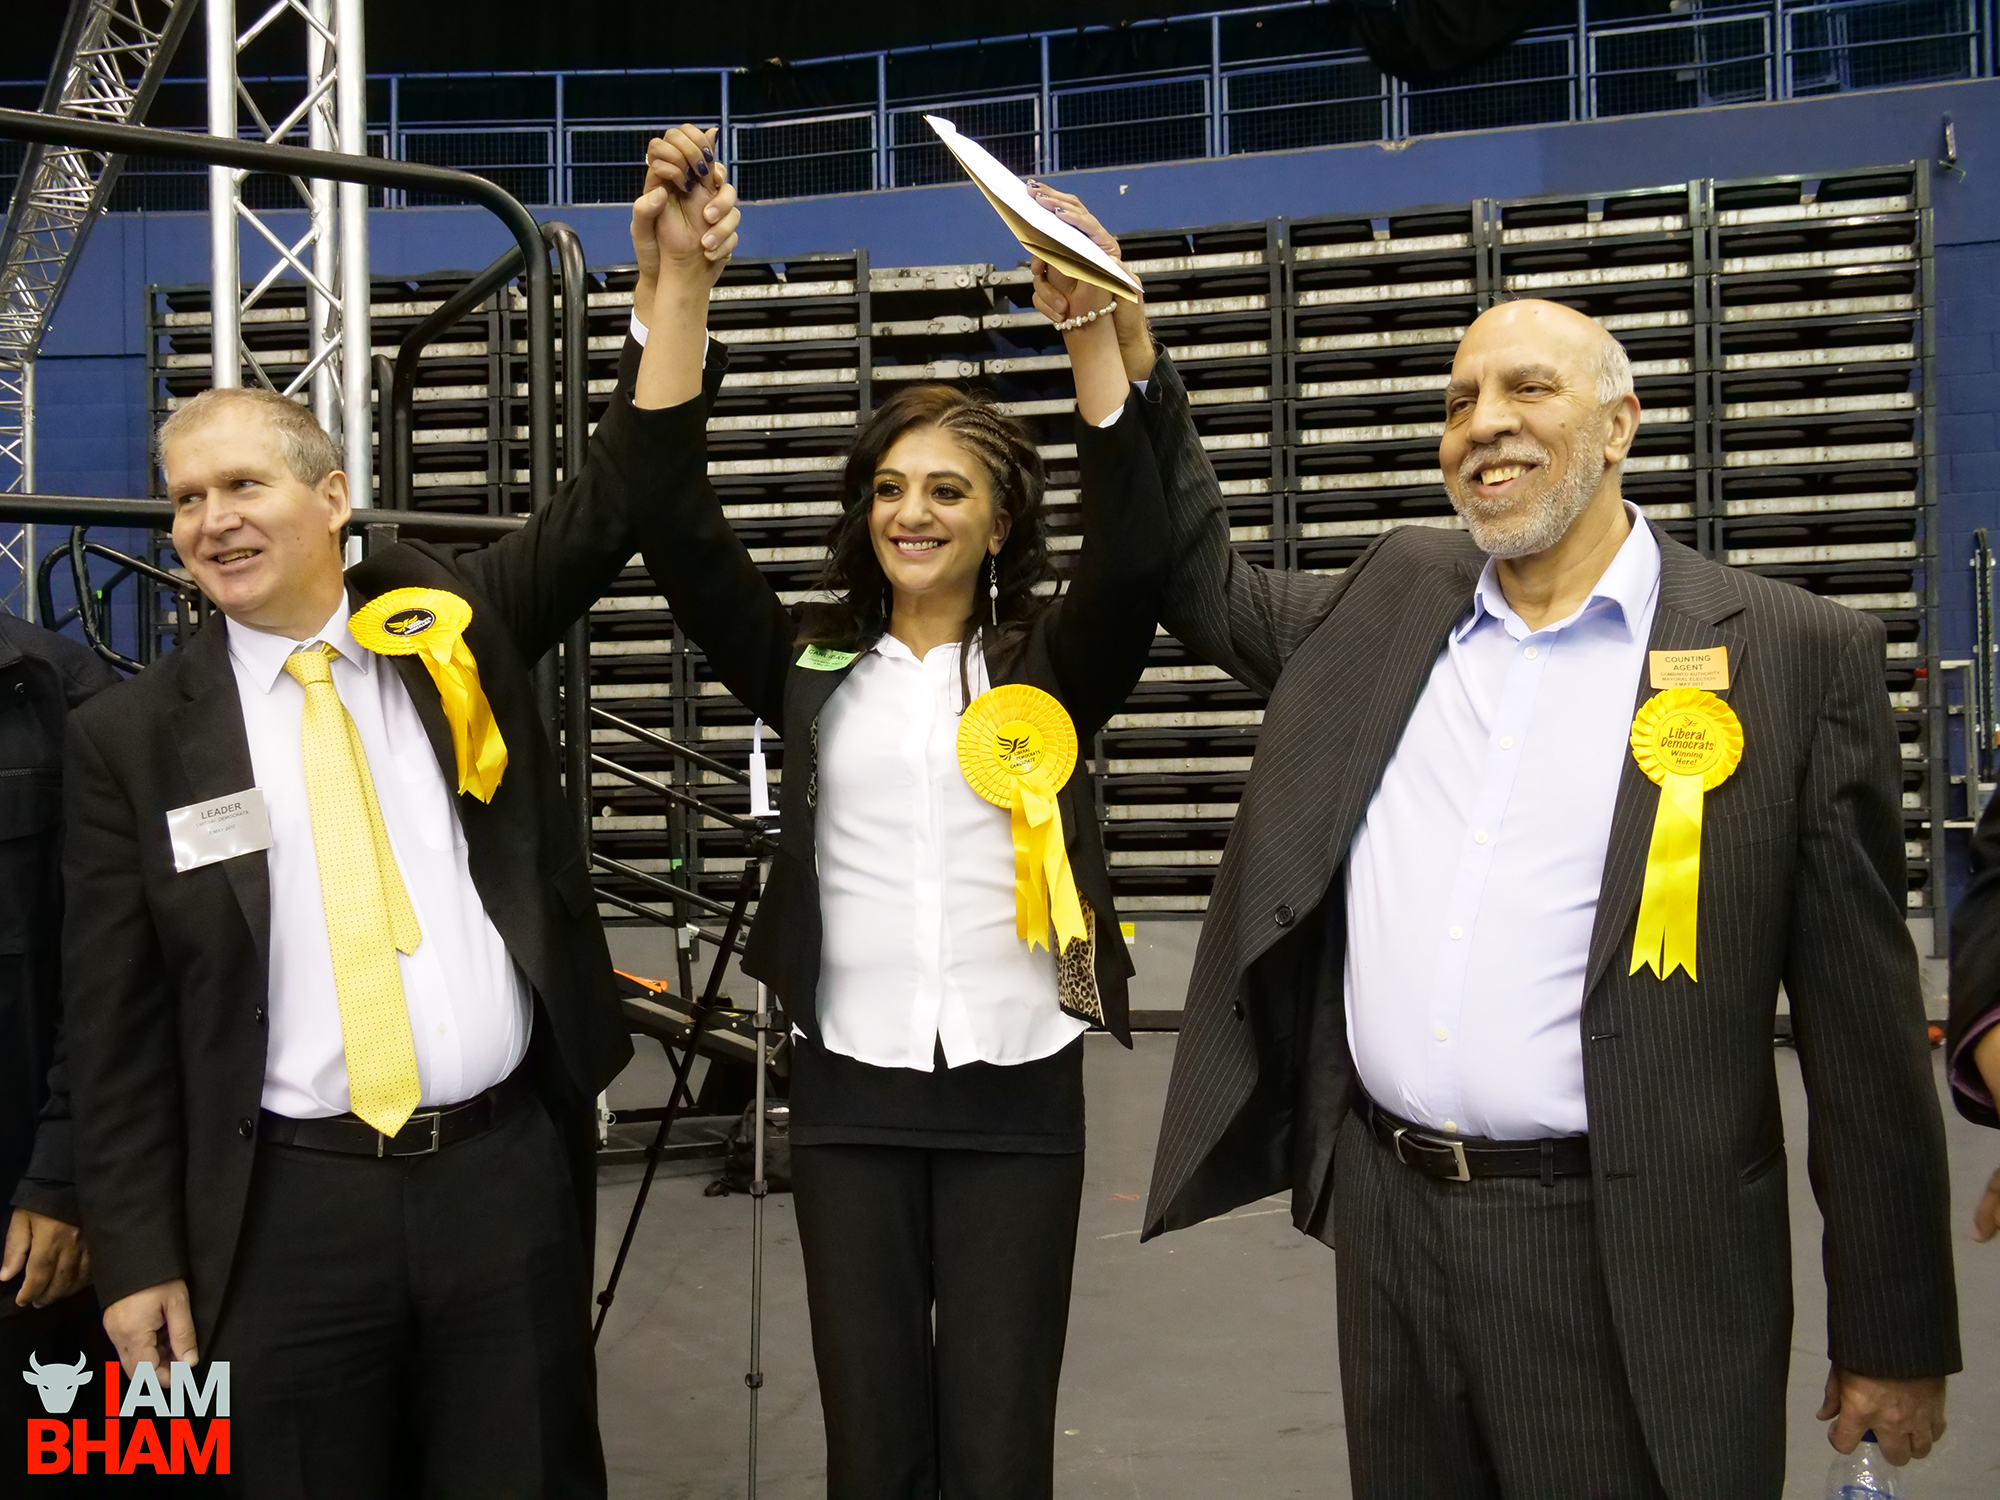 New Perry Barr councillor Mooriam Jan celebrates her win with fellow Lib Dem councillors